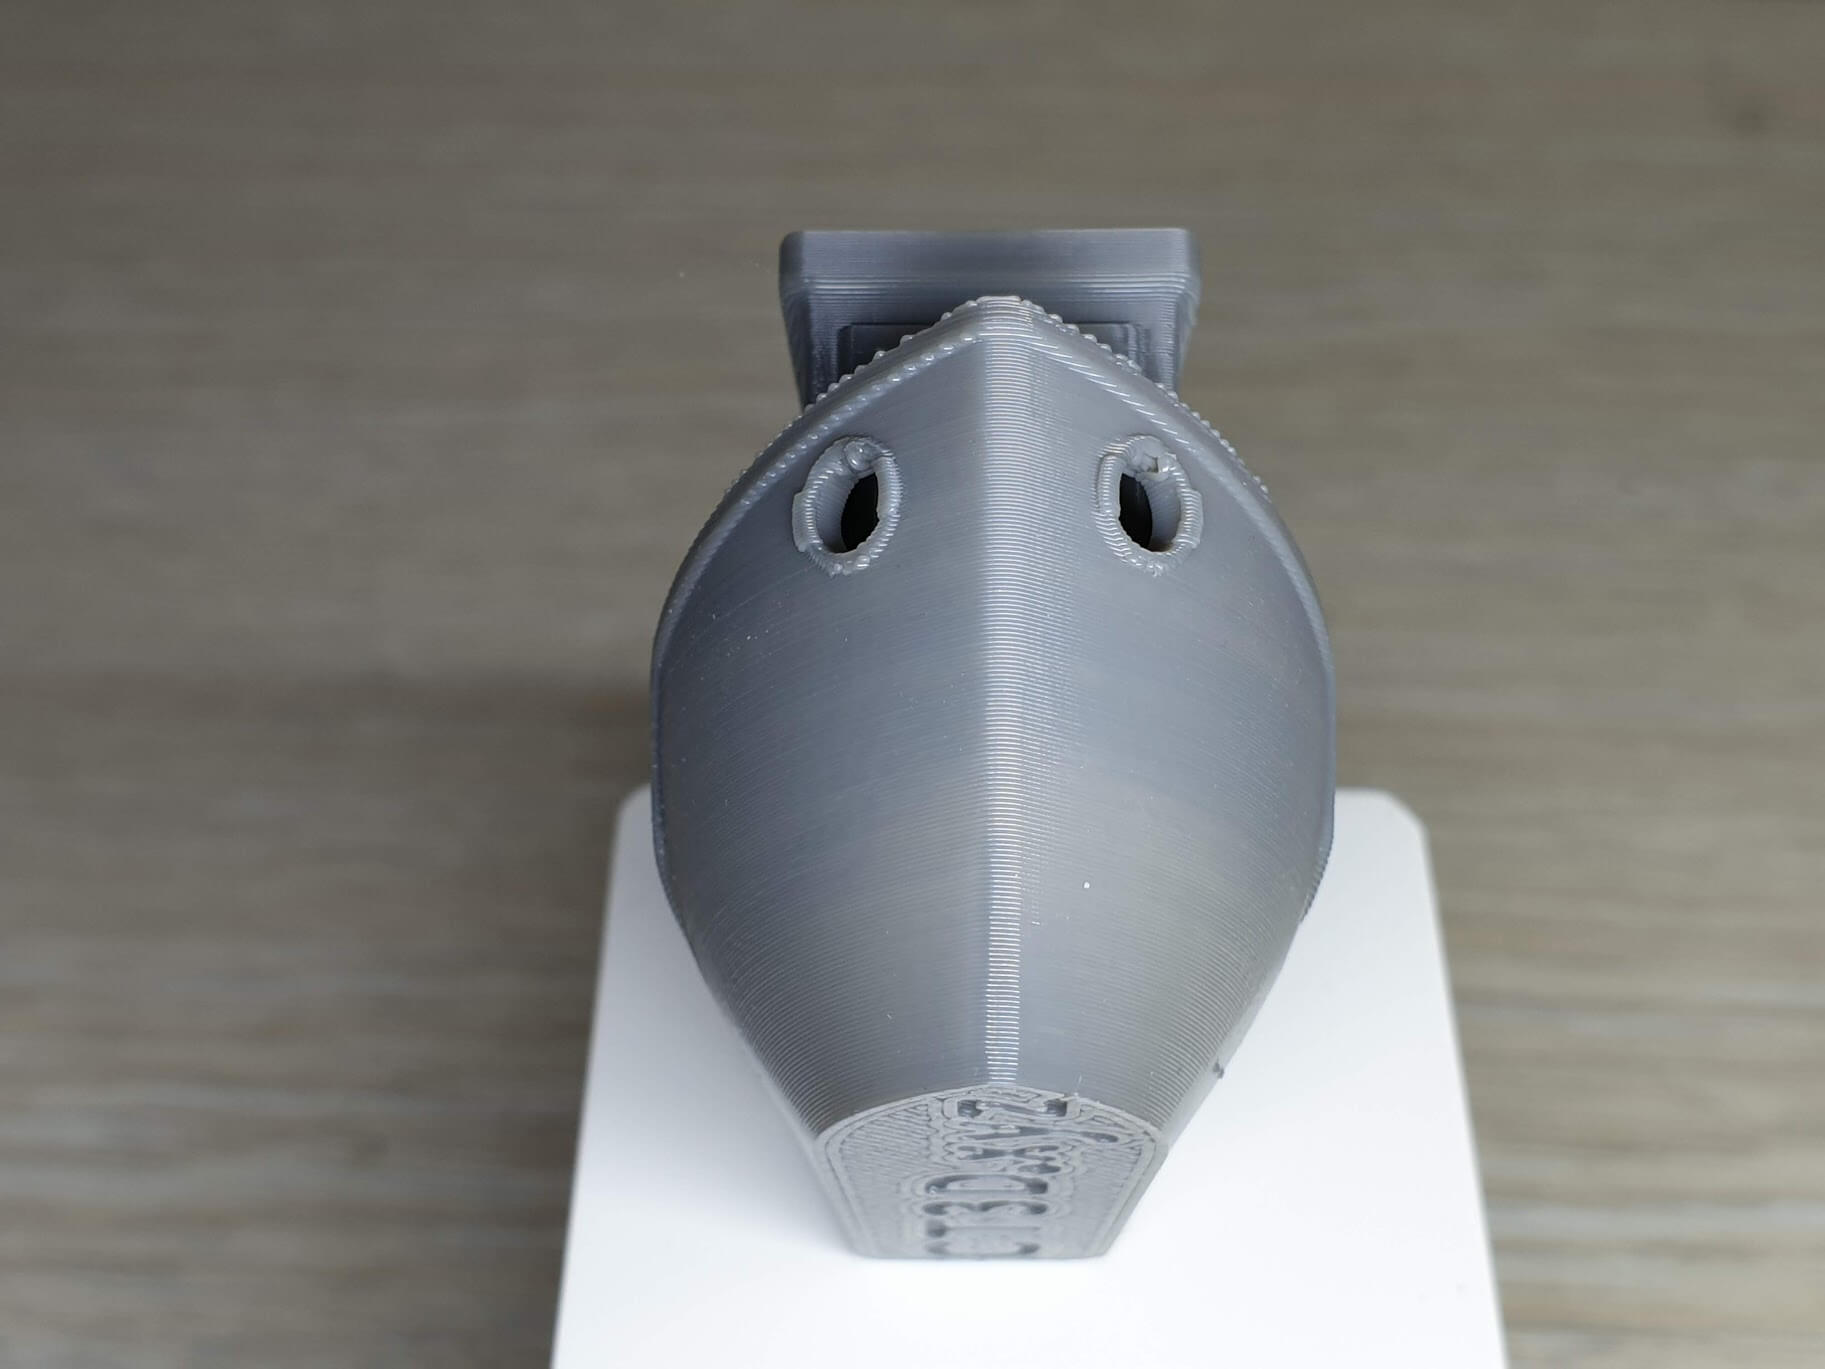 Ideamaker benchy 1 | IdeaMaker Profiles for Sidewinder X1 and Genius